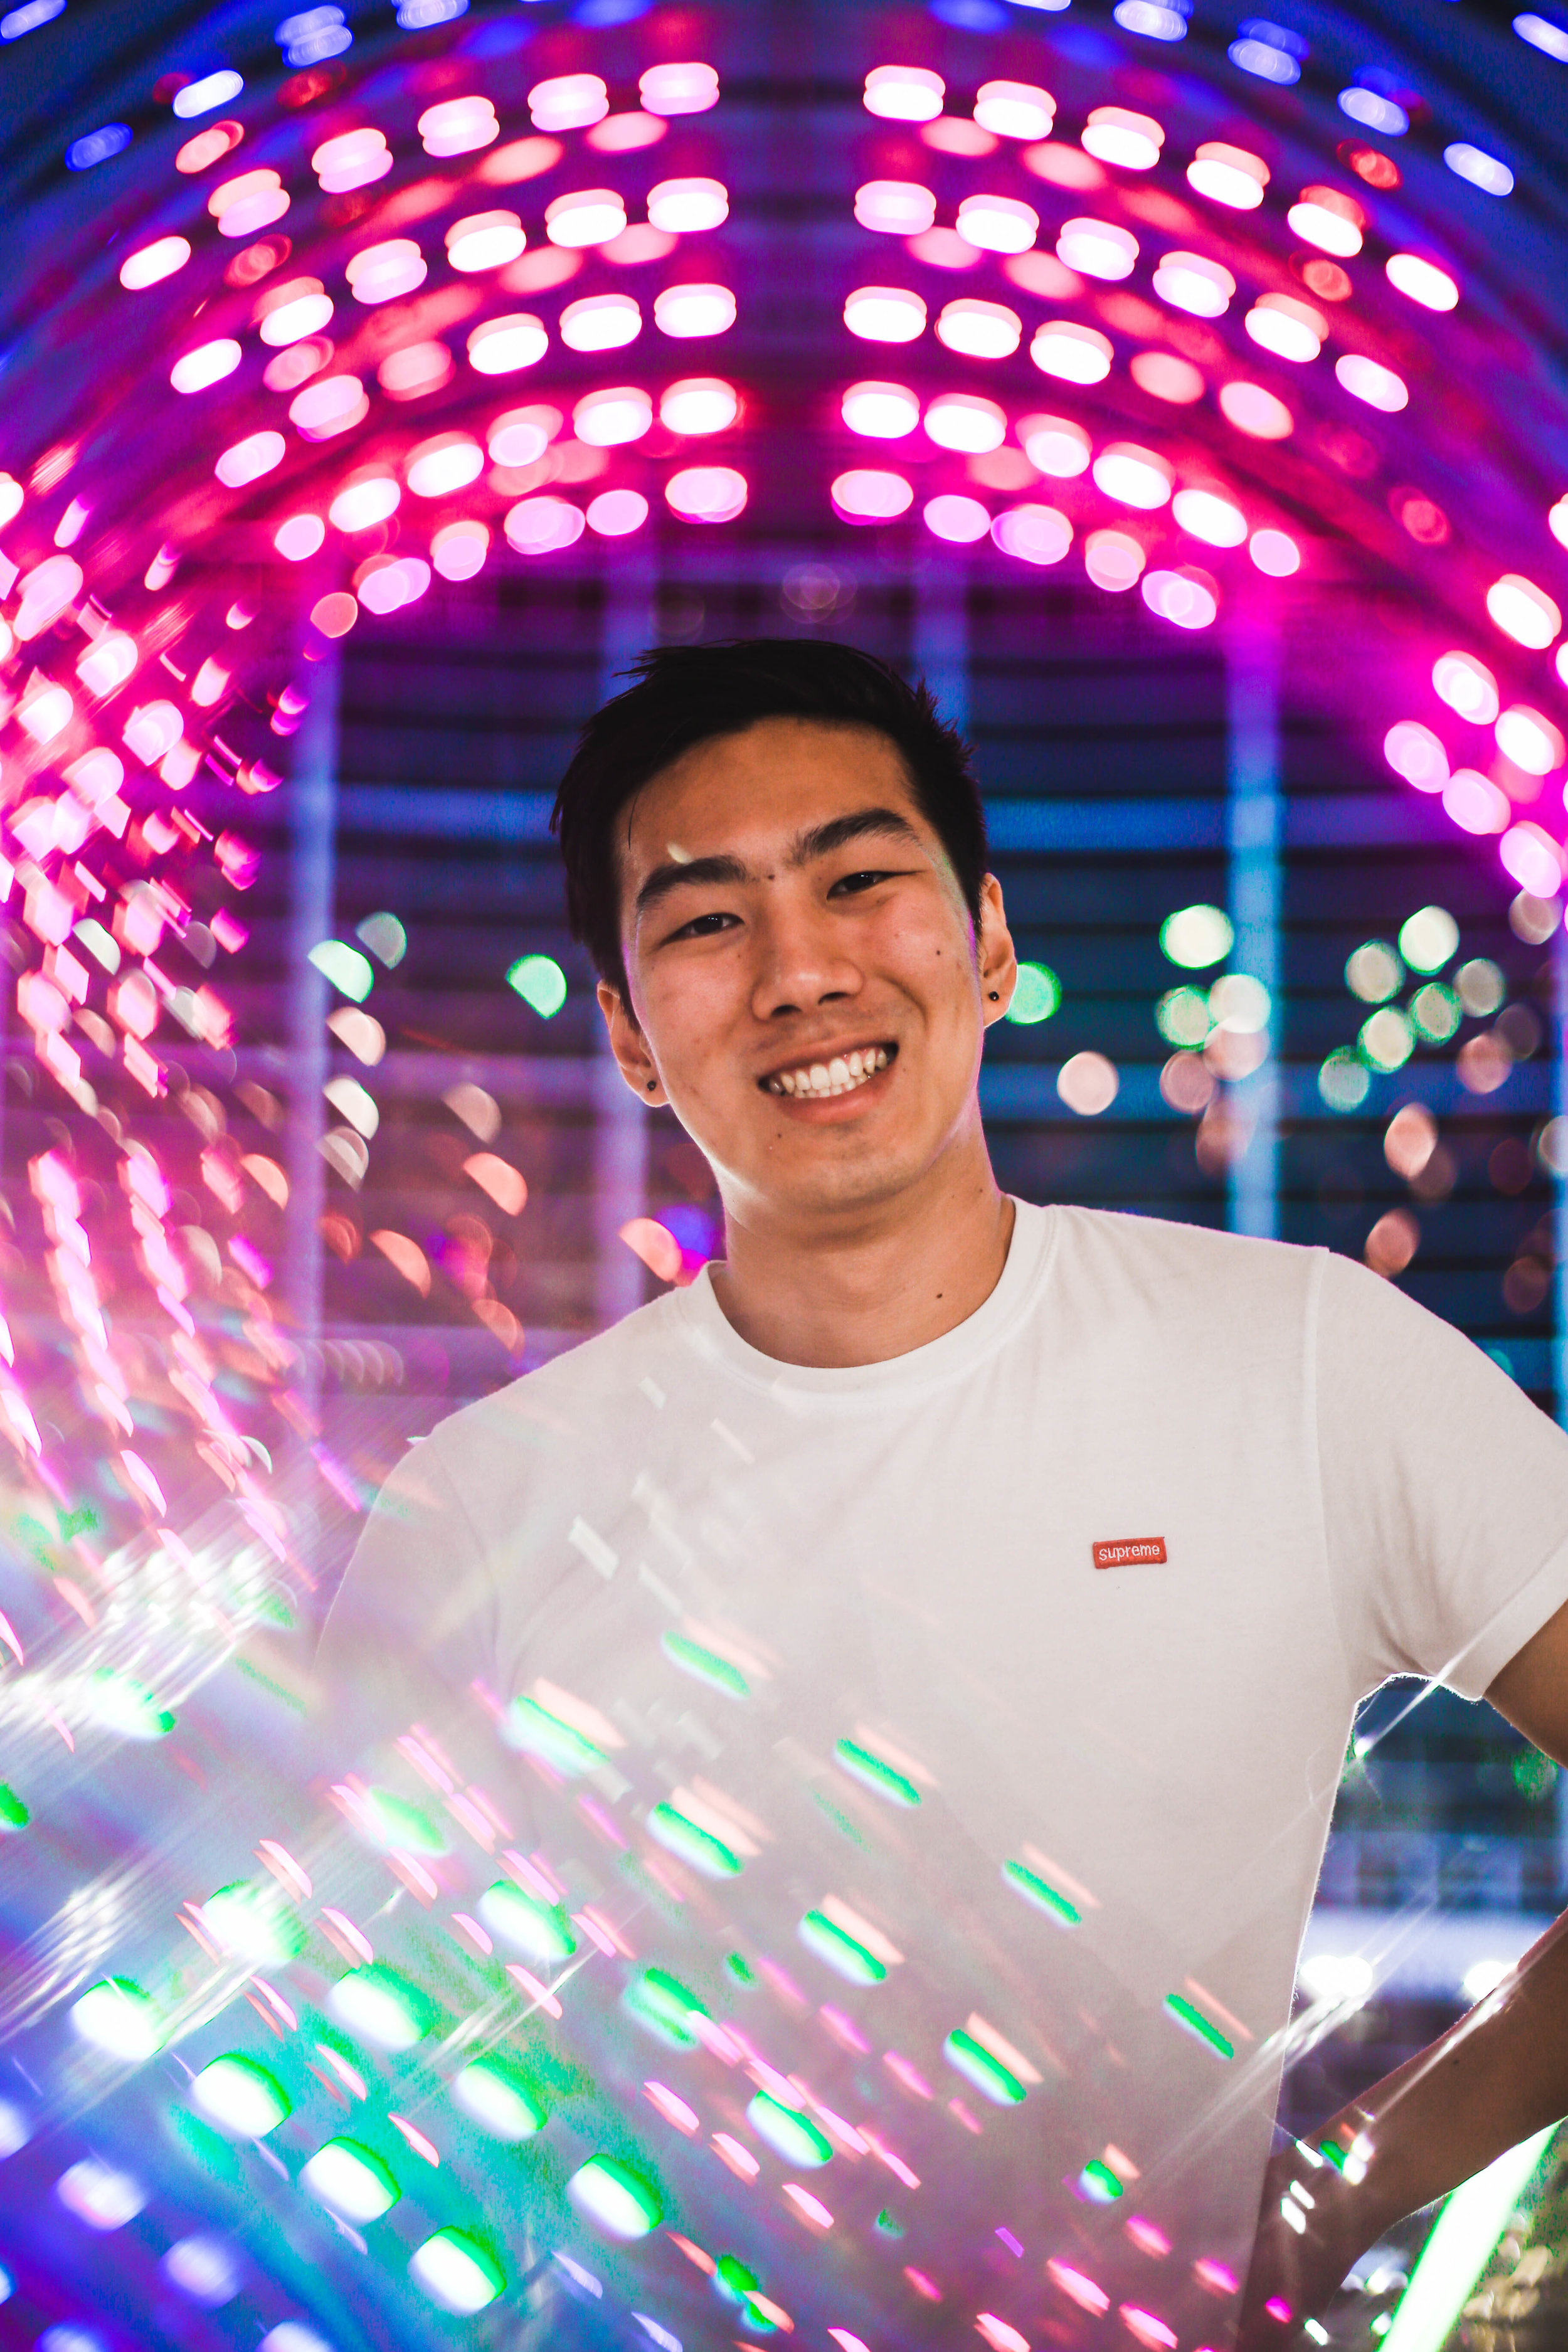 Casey Takeda -Brand Manager - Casey is from SoCal and currently works in SF. He has a passion for music while his other interests include video games, bartending, and being tech trash.